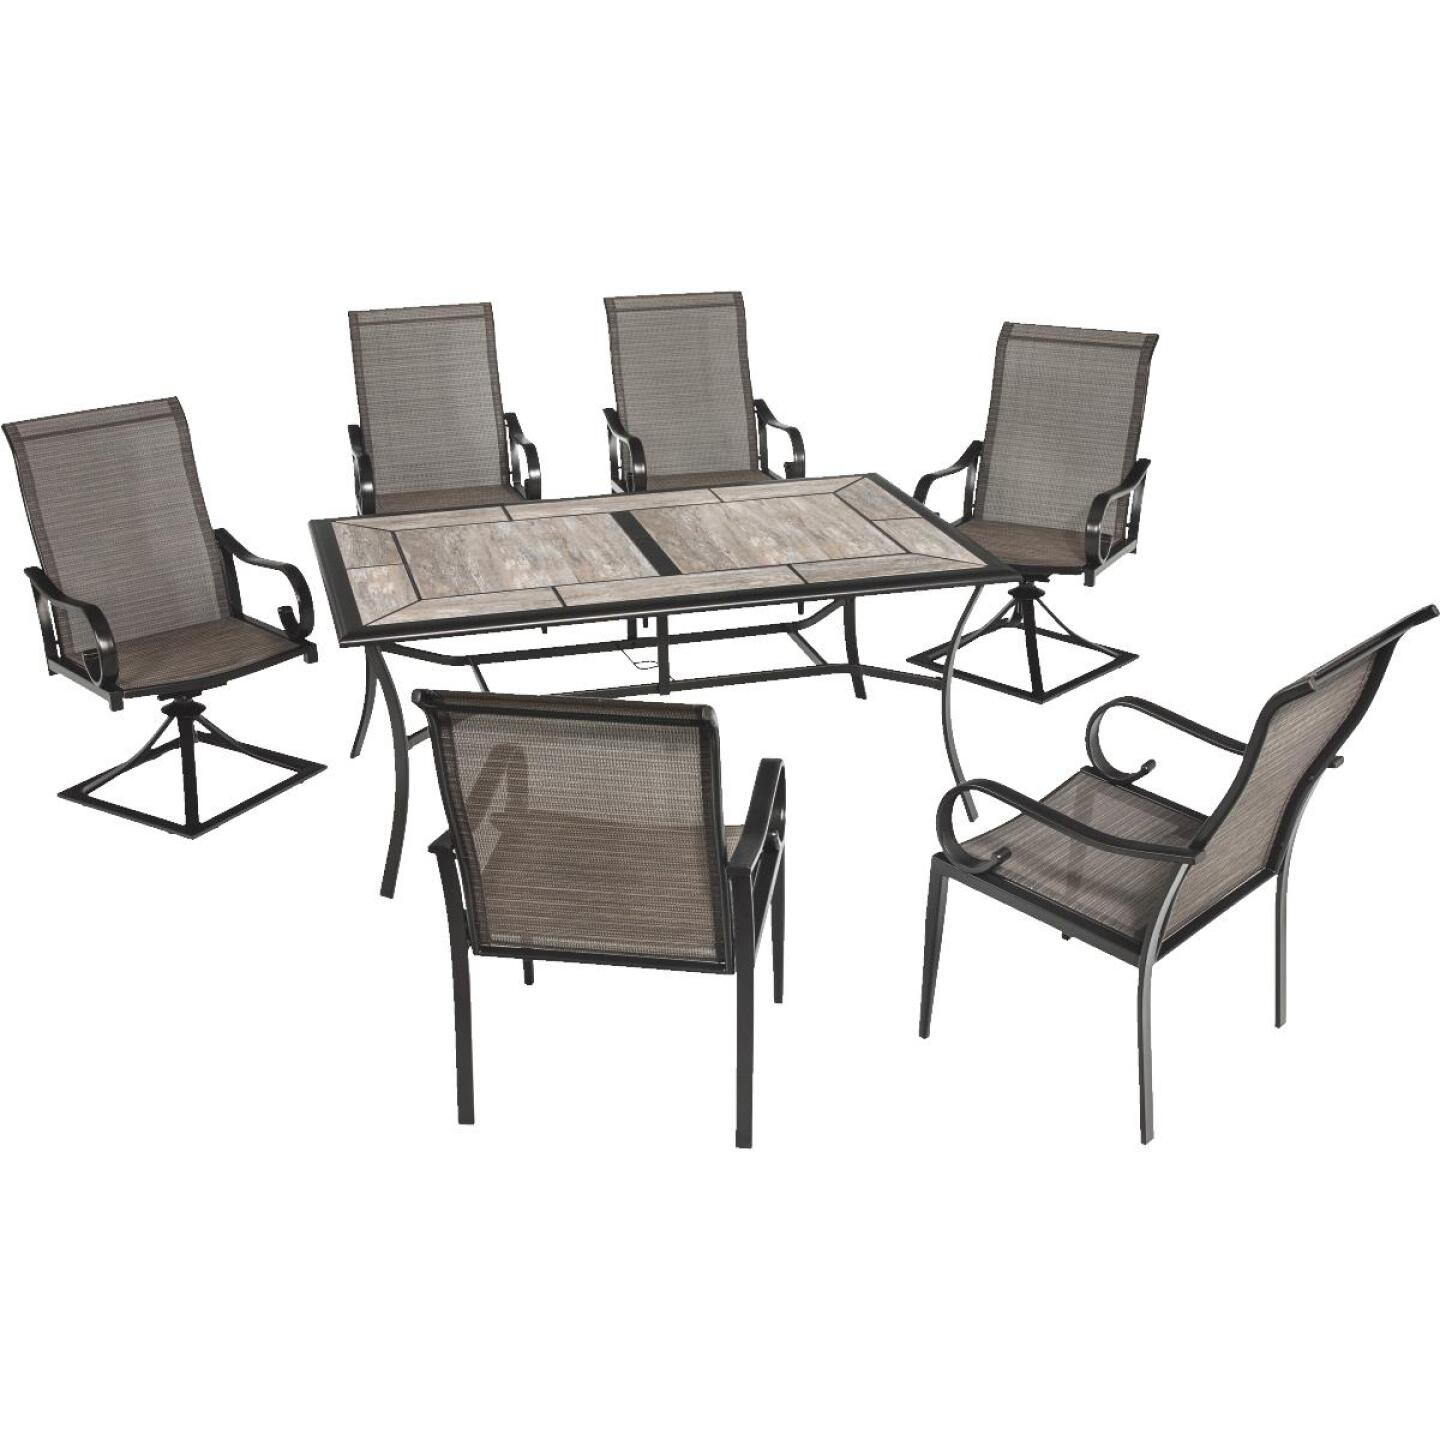 Outdoor Expressions Berkshire 7-Piece Dining Set Image 71